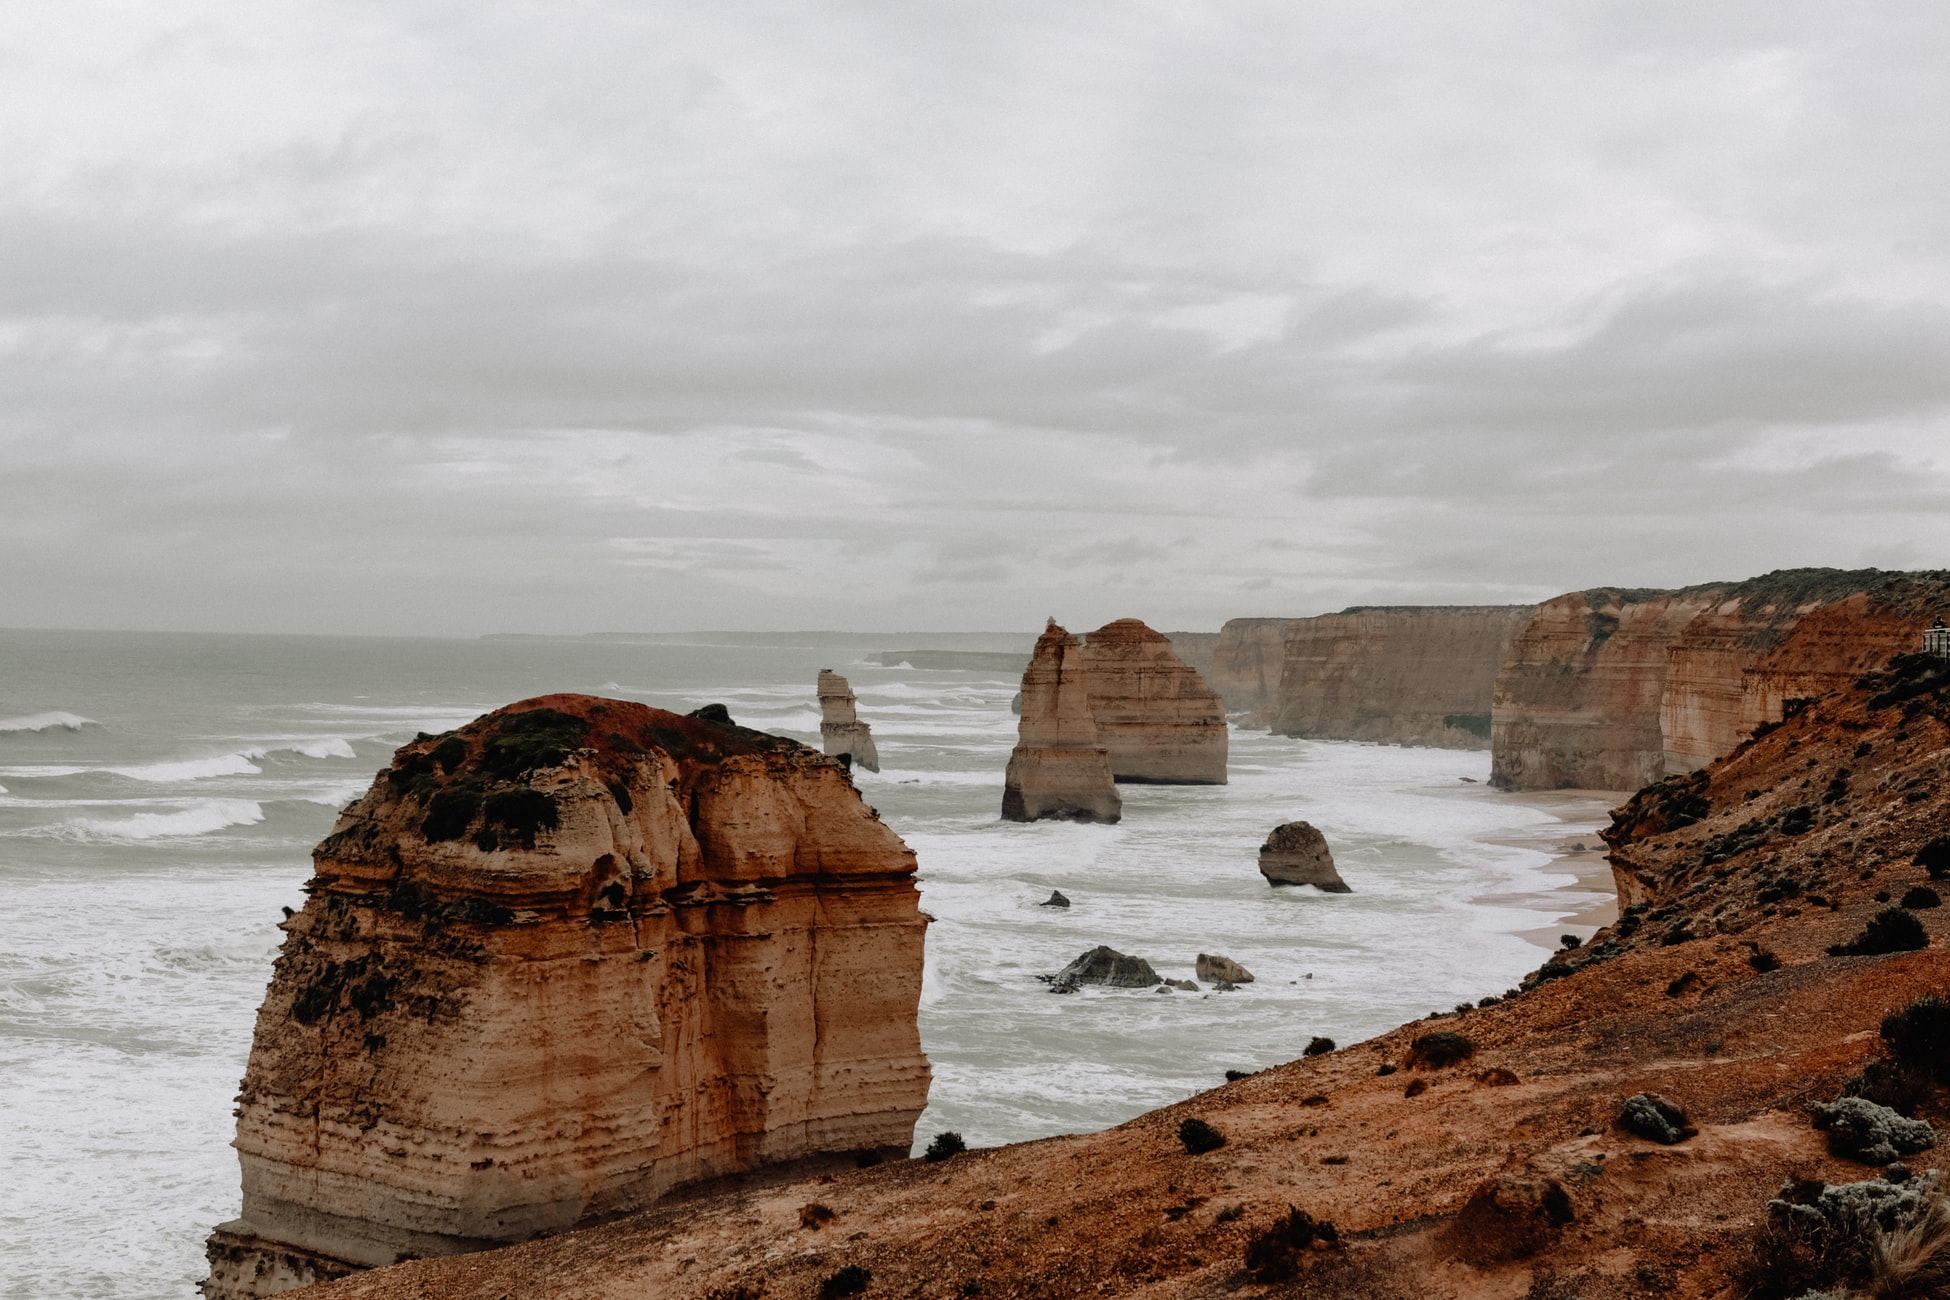 Should you visit the Great Ocean Road during winter?